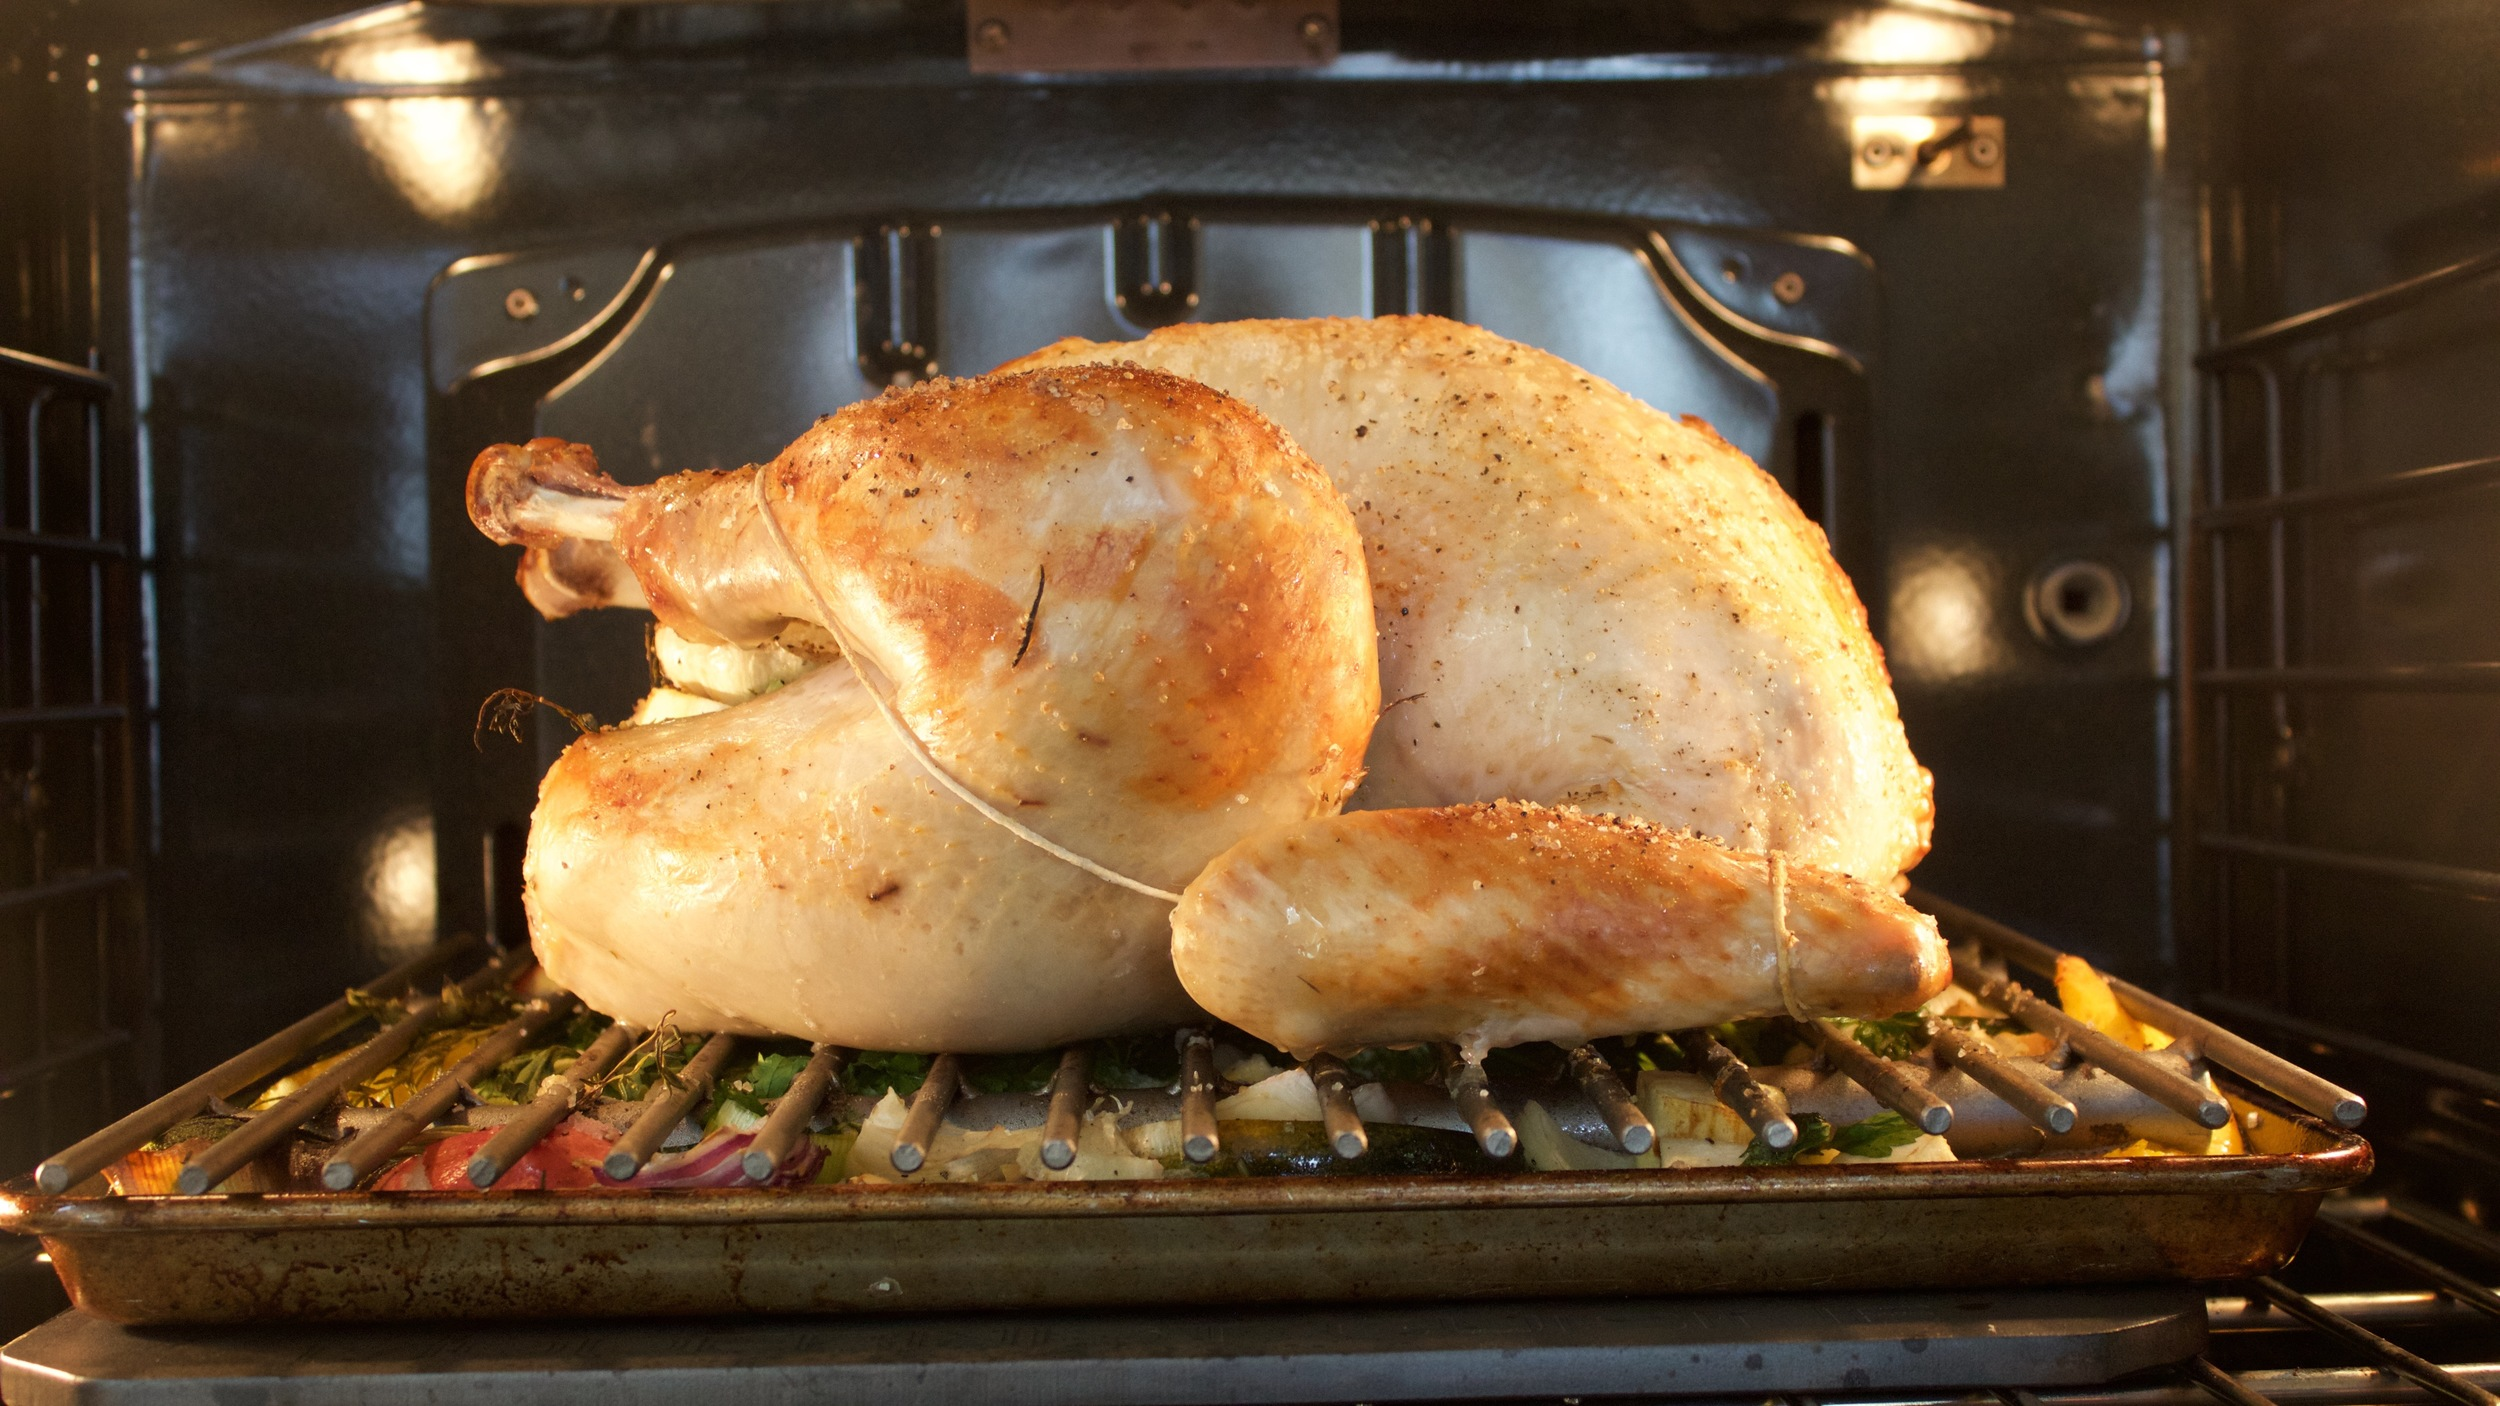 roasted turkey in the oven, on a Baking Steel